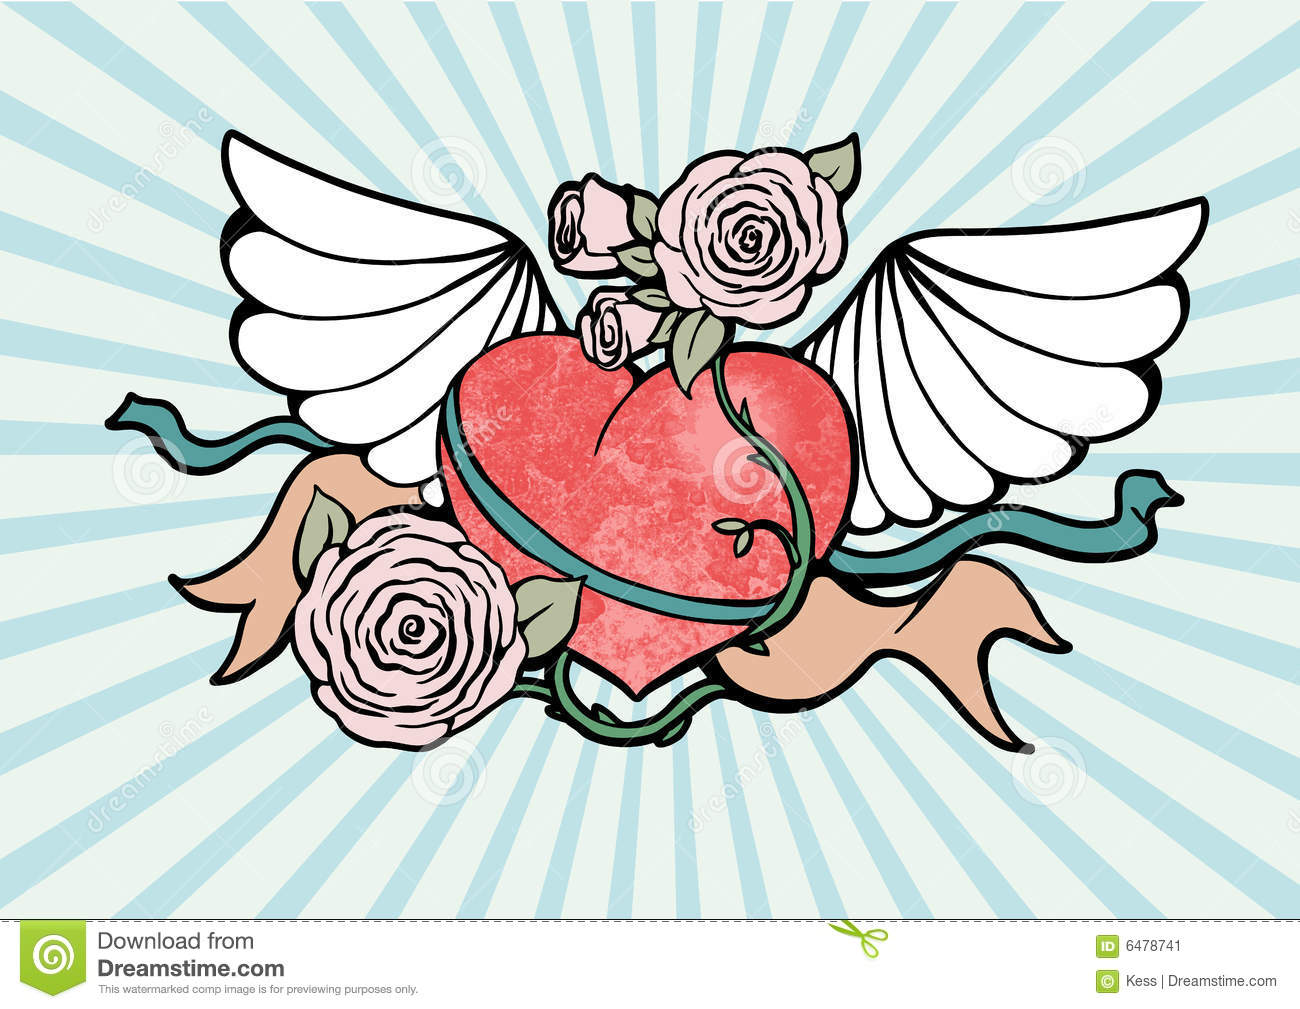 Clipart of hearts with wings and roses picture freeuse download Heart With Wings And Roses Stock Image - Image: 6478741 picture freeuse download